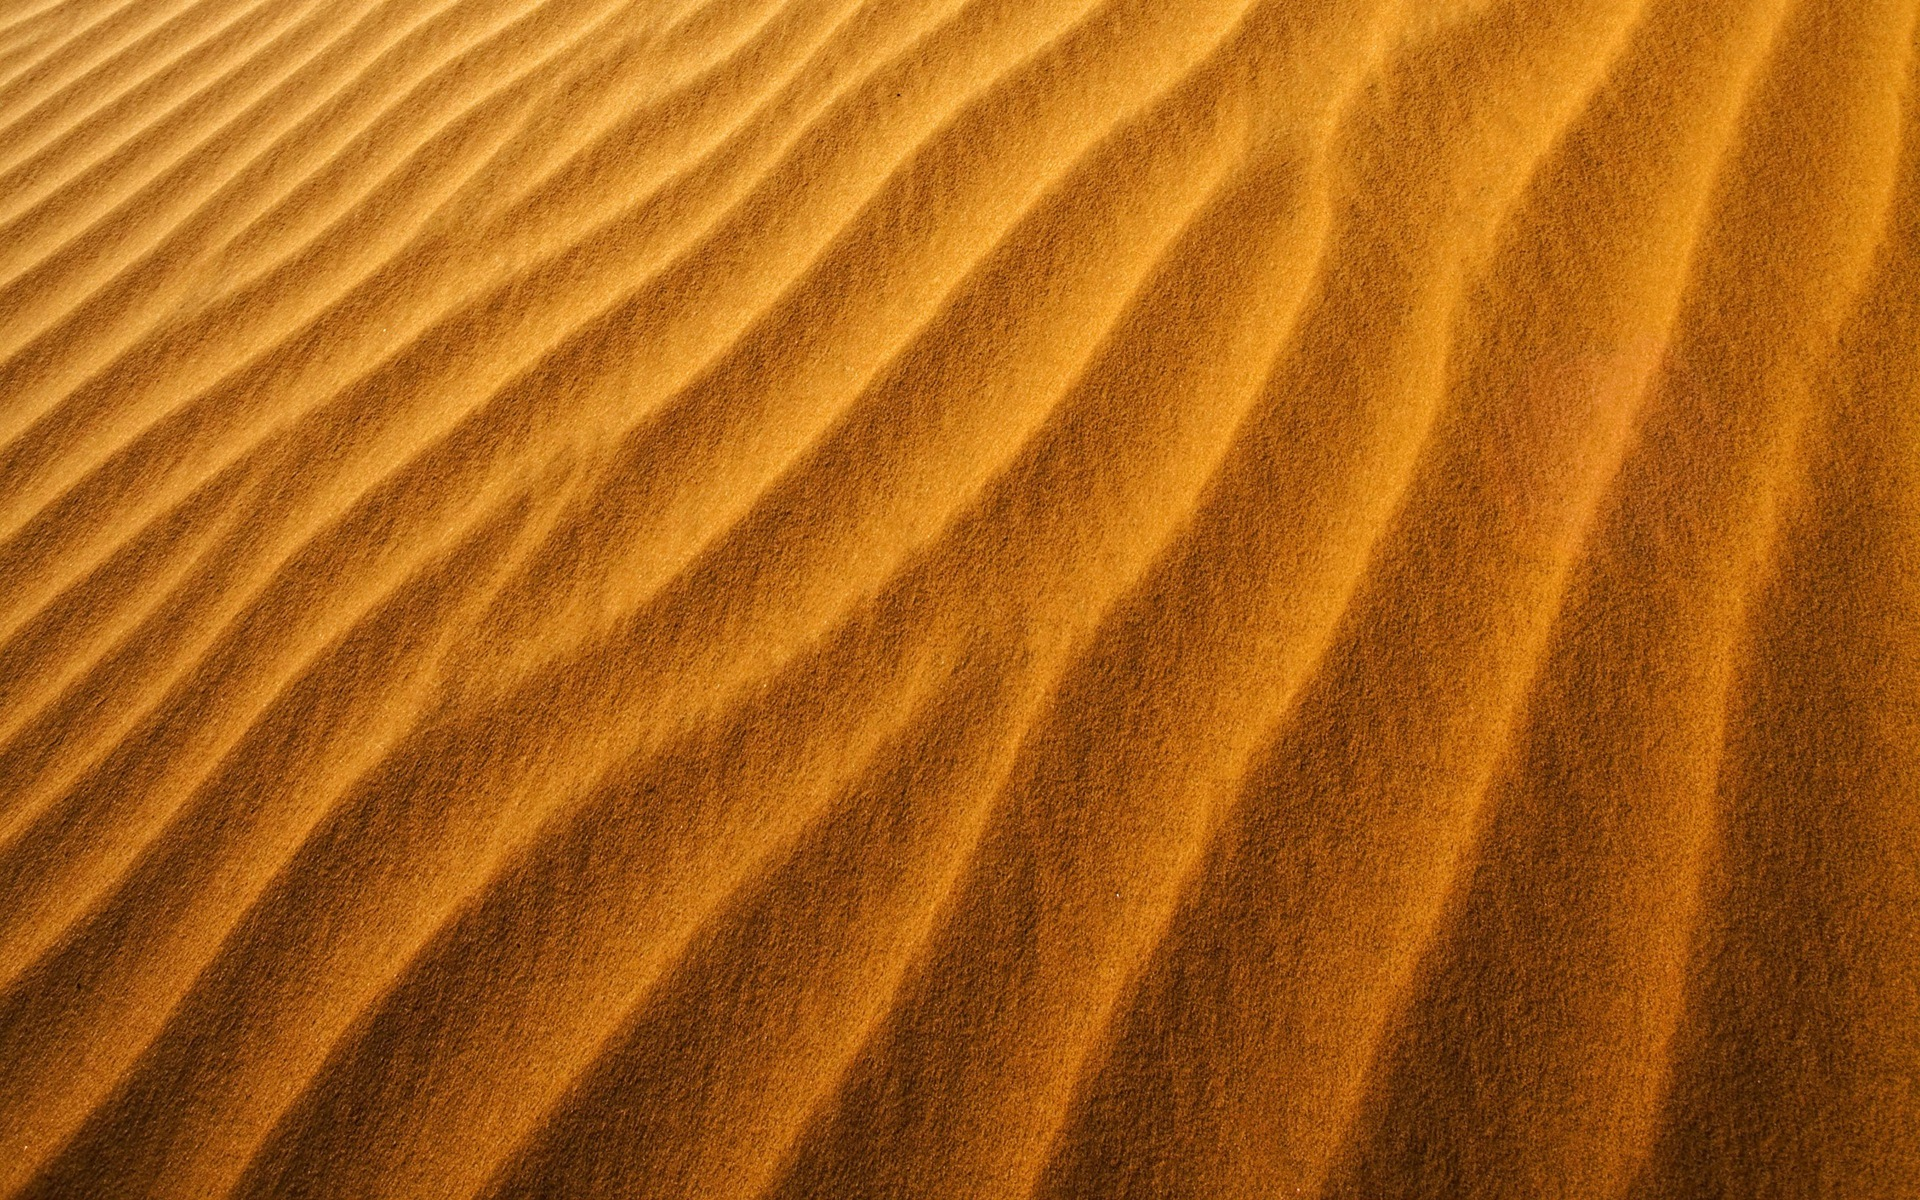 Sand Grains Of Sand Katy Veil Dunes Names Pictures To Pin